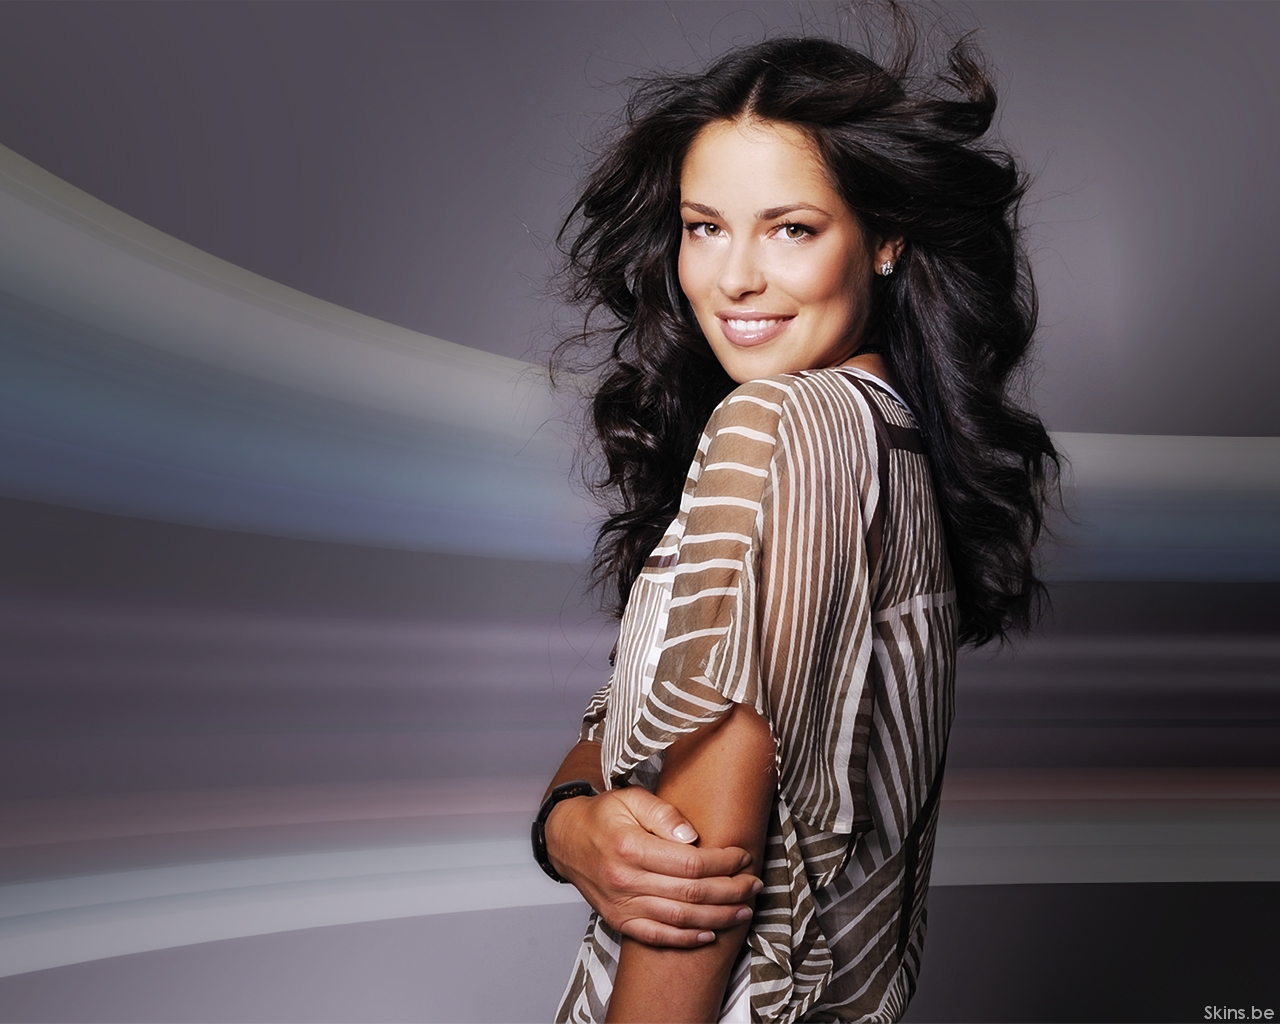 Ana Ivanovic wallpaper (#36696)